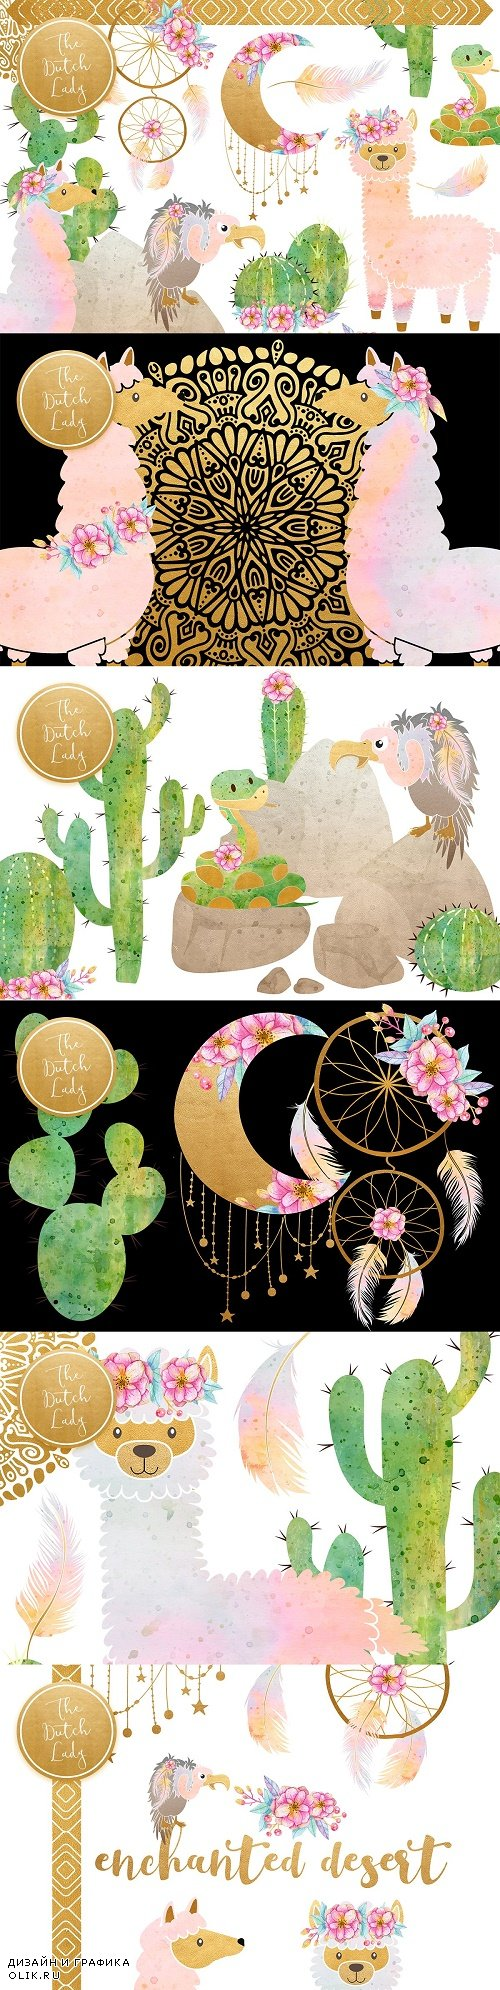 Enchanted Boho Desert Clipart Set - 3927984